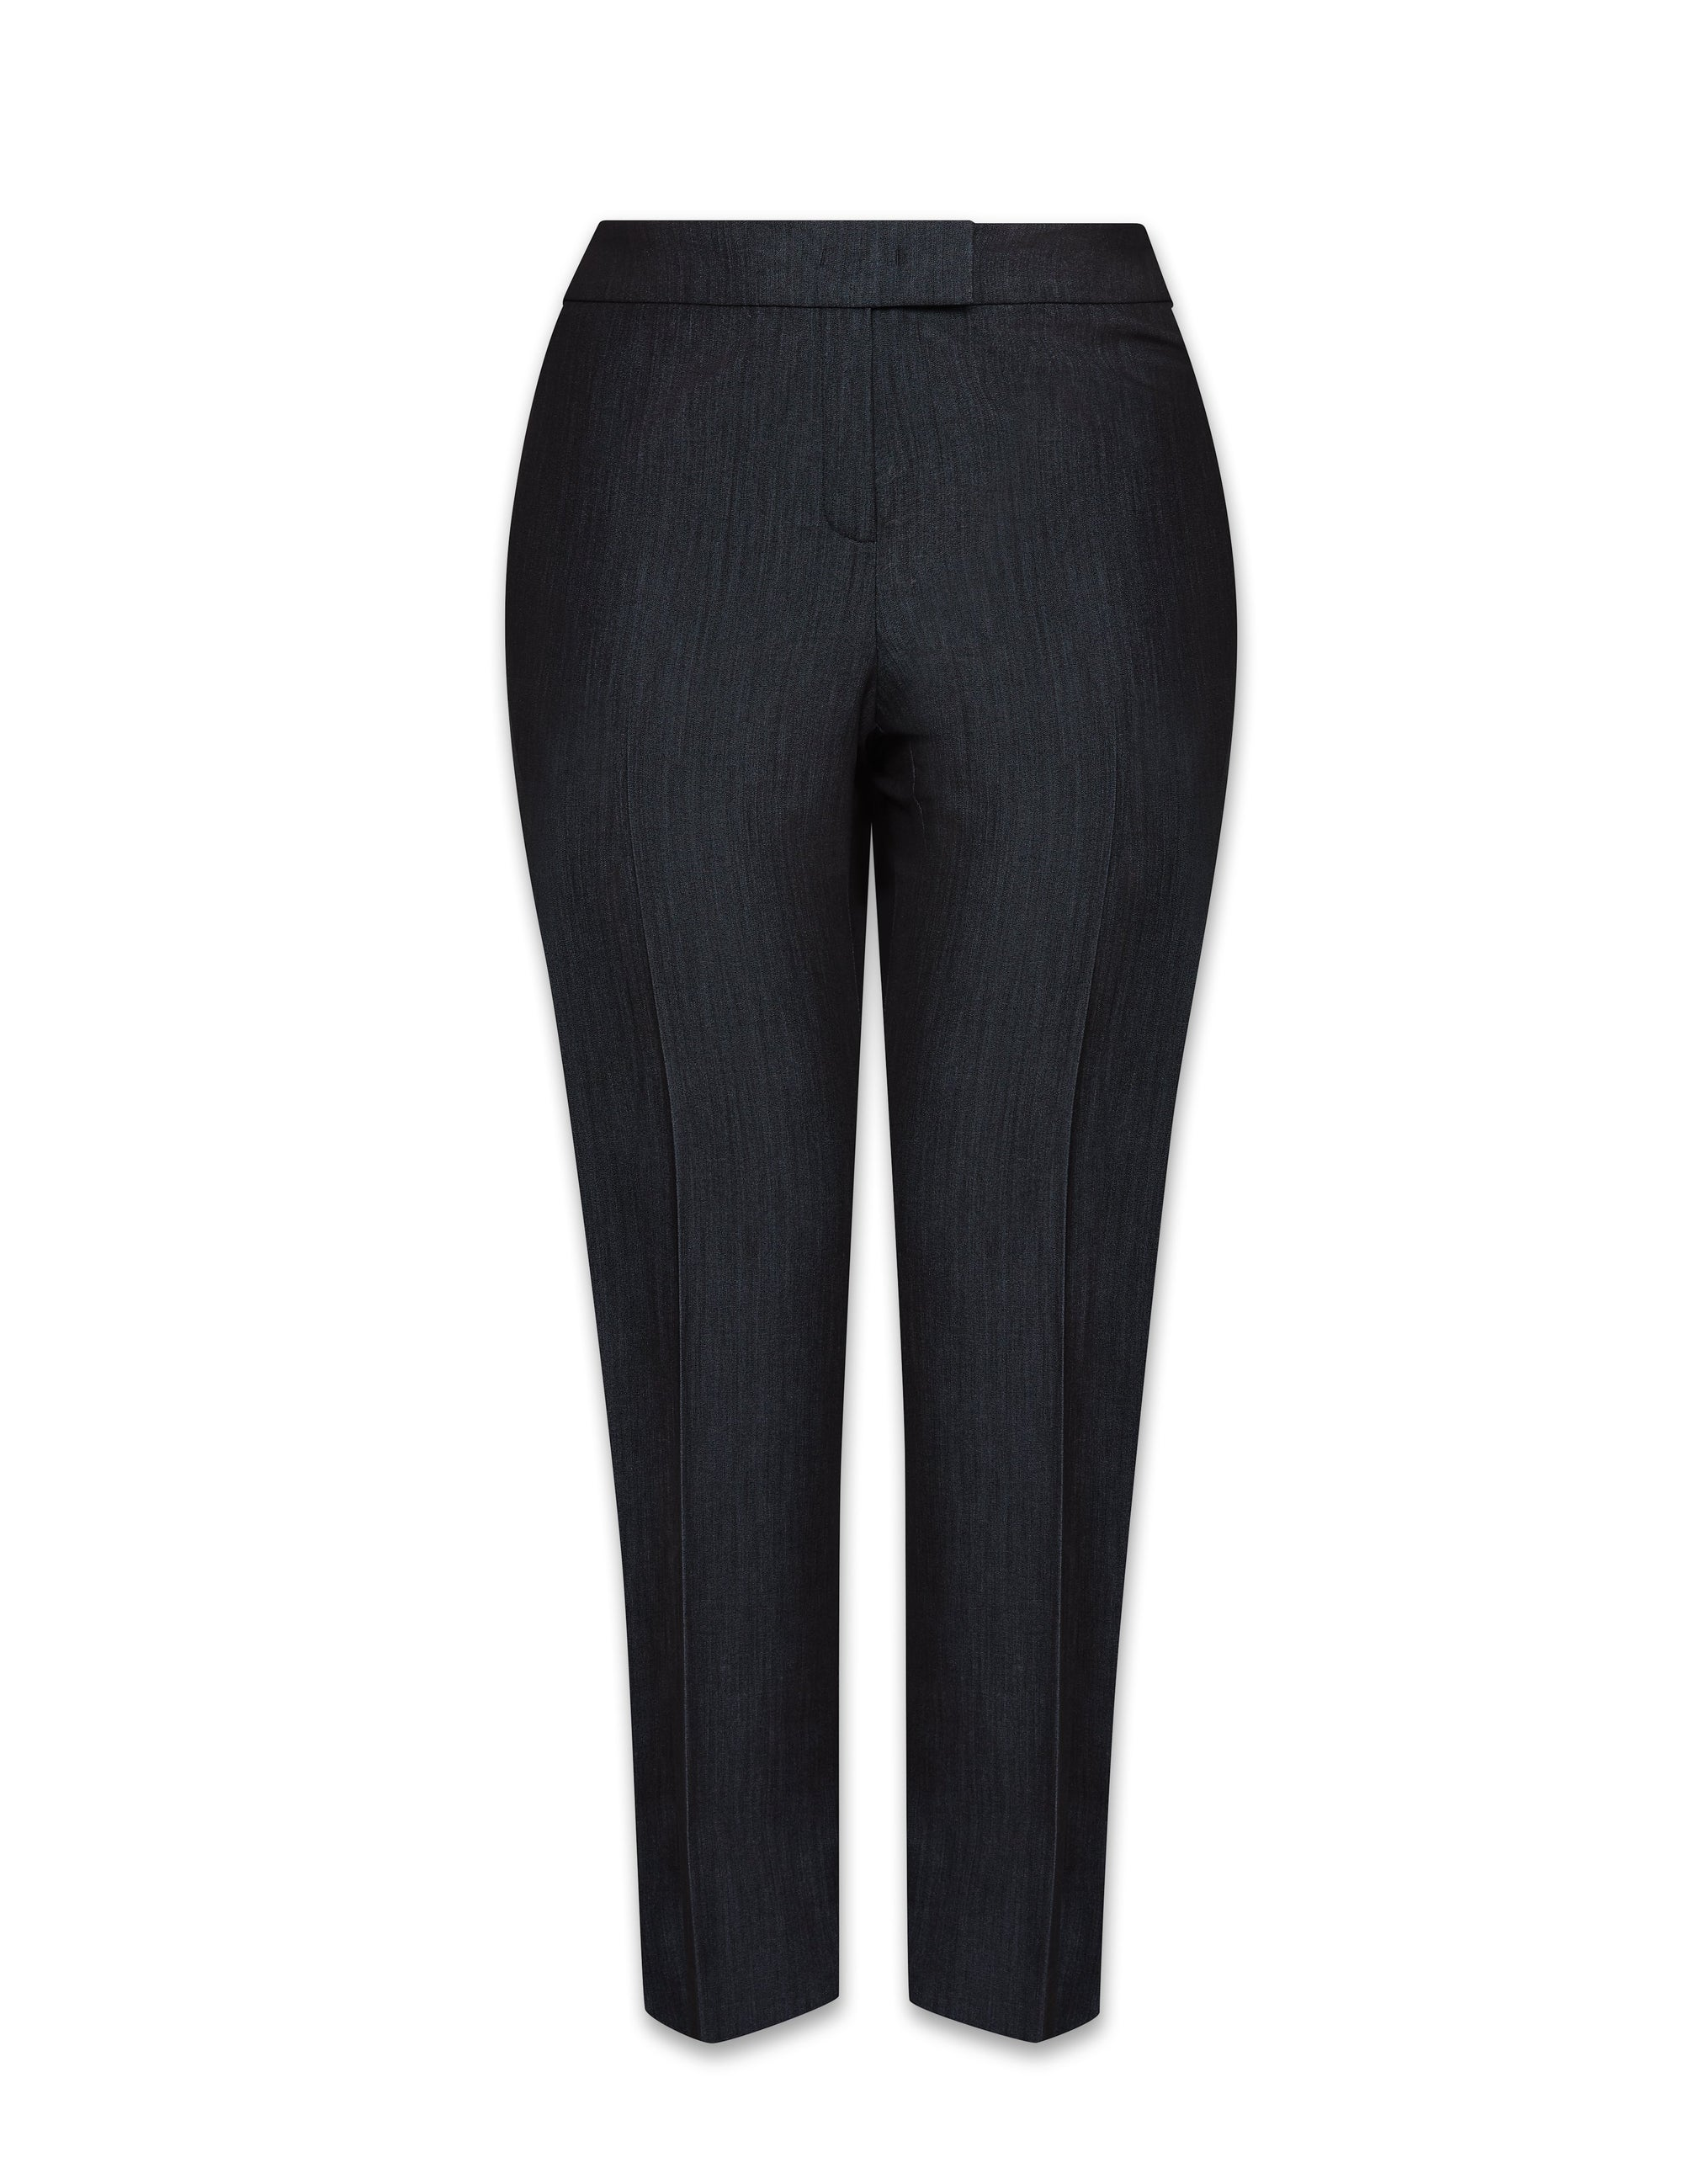 Anne Klein Indigo Twill Denim Slim Leg Pant